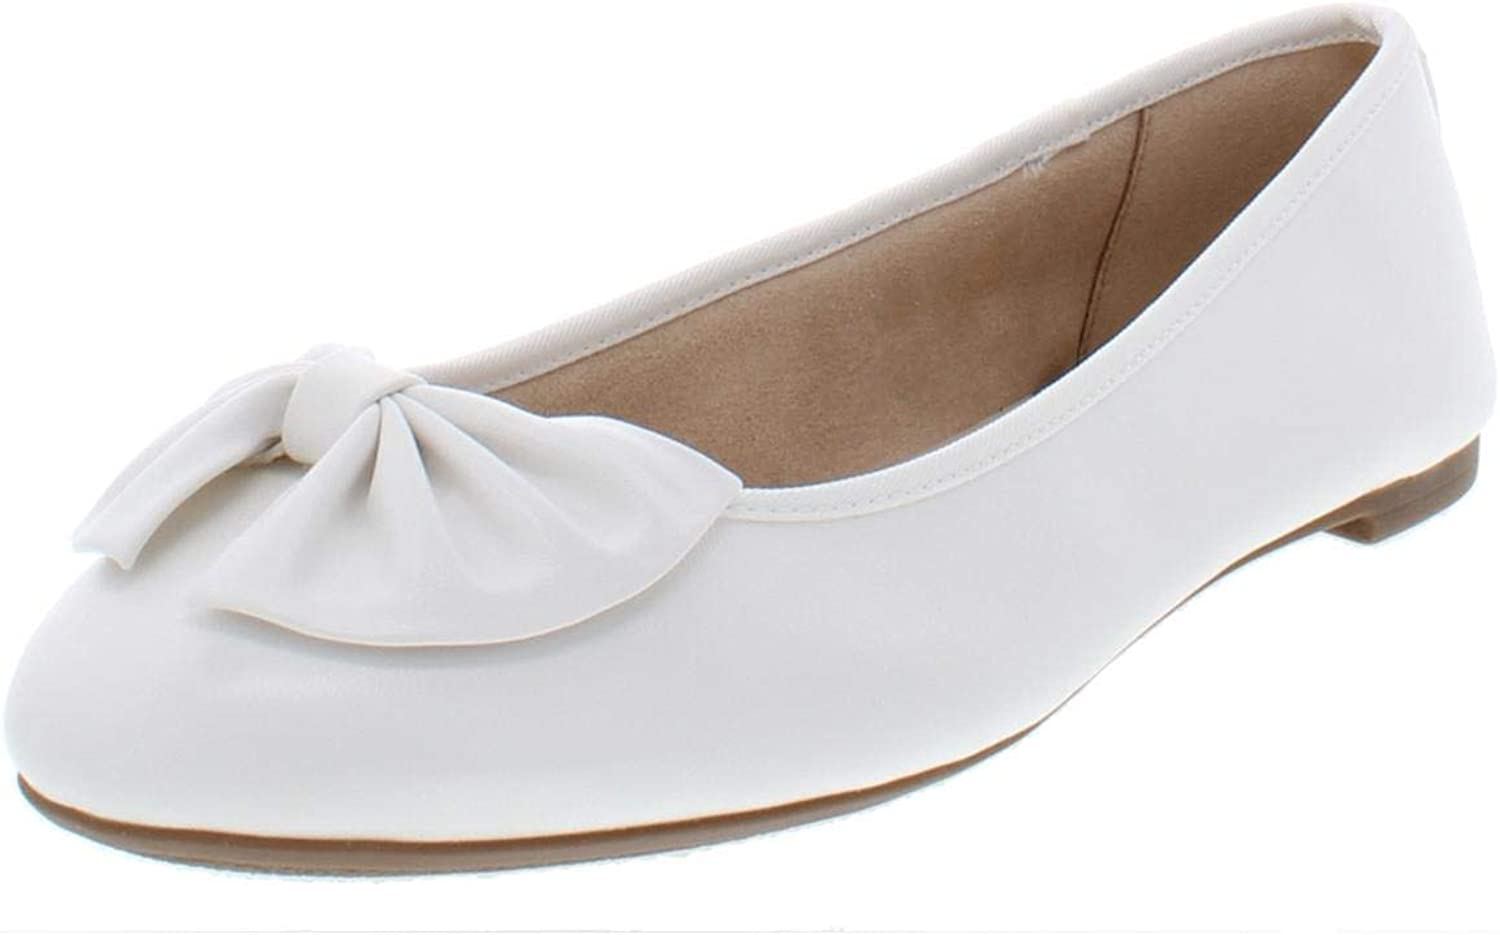 Circus by Sam Edelman Womens Ciera Padded Insole Faux Leather Ballet Flats